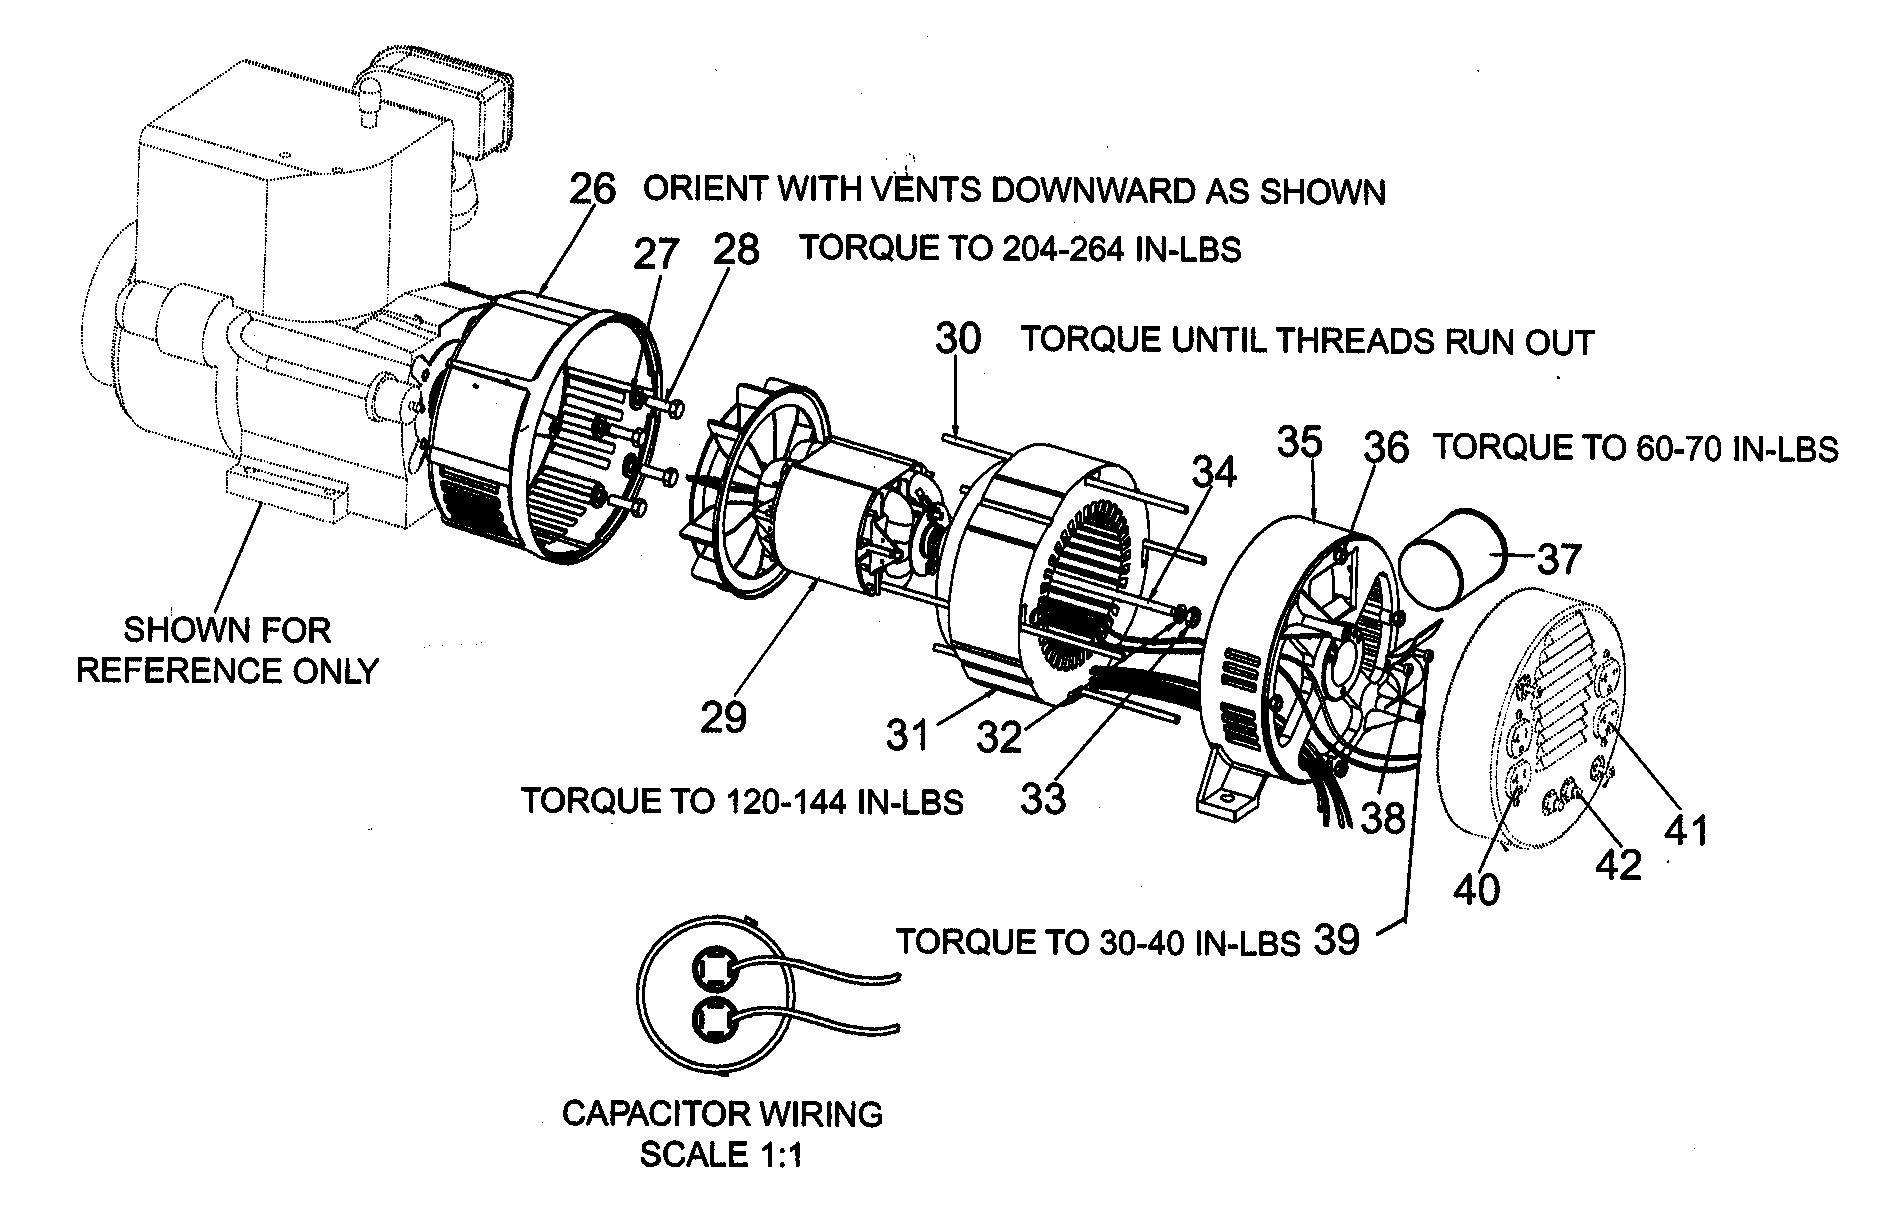 Honda Gx270 Carburetor Parts Diagram Honda GX390